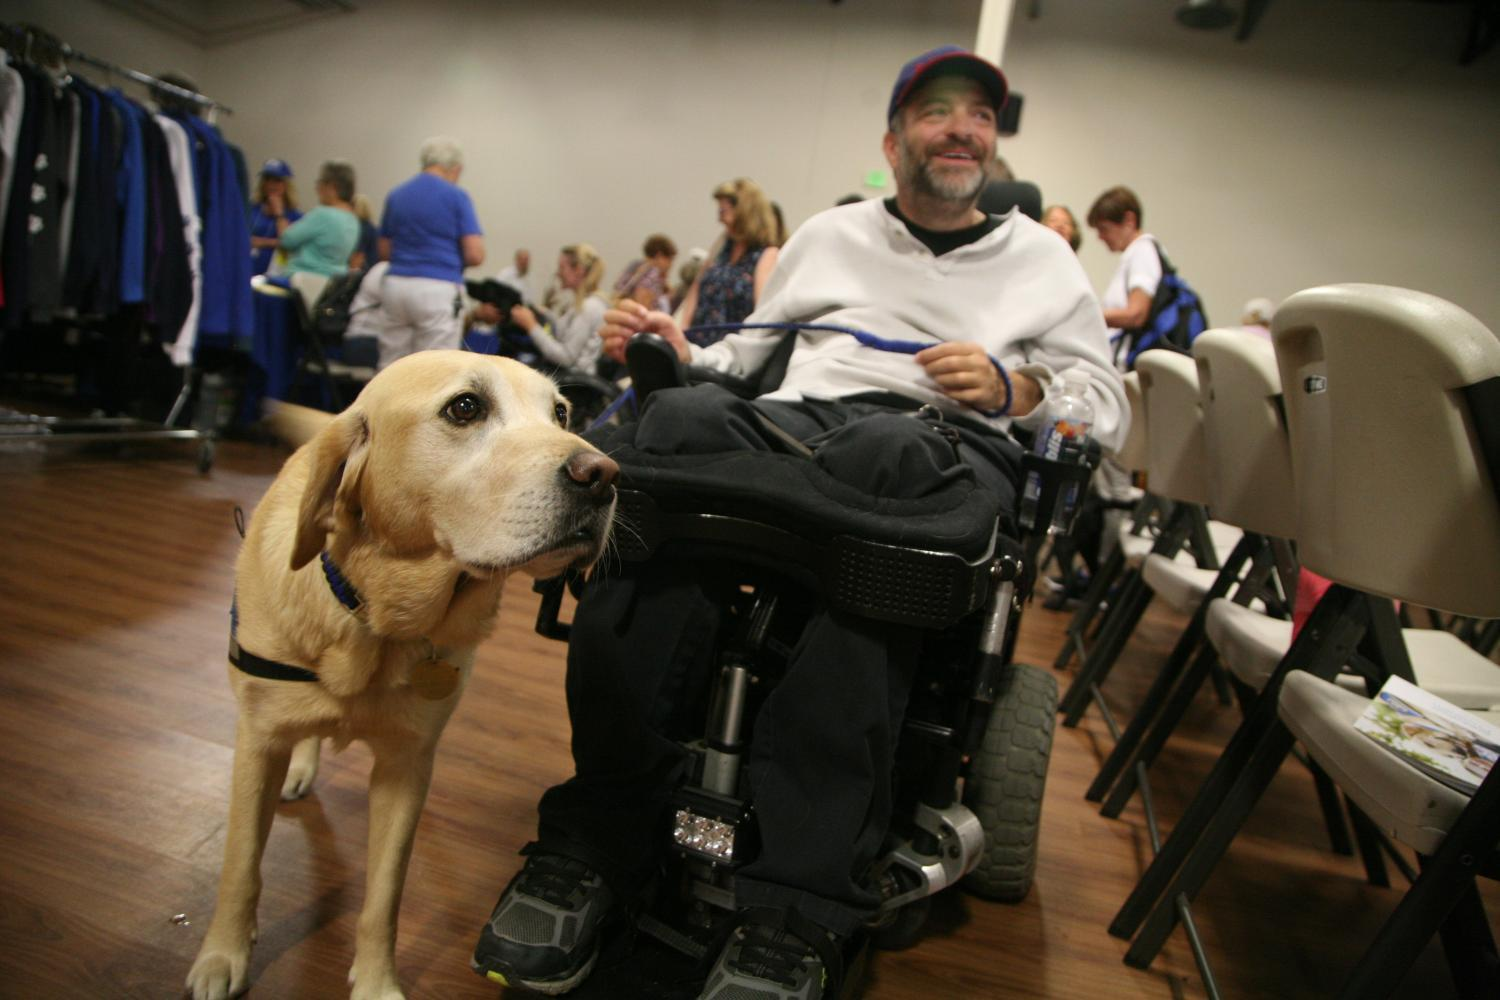 cci dog and owner in a wheelchair